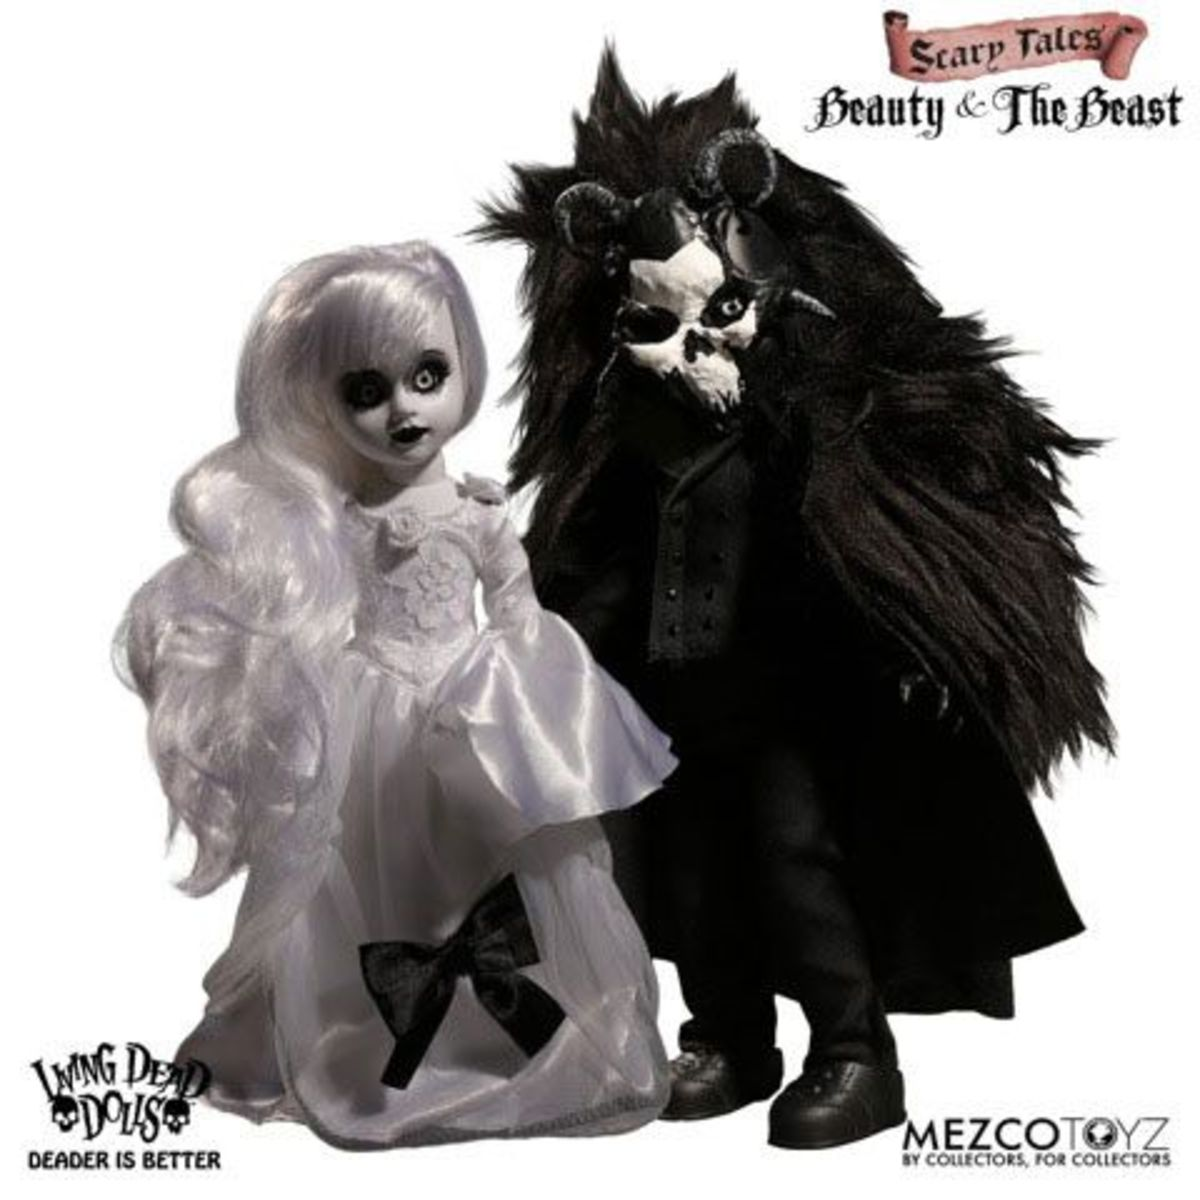 panenka Living Dead Dolls - Scary Tales Beauty and the Beast - MEZ95065